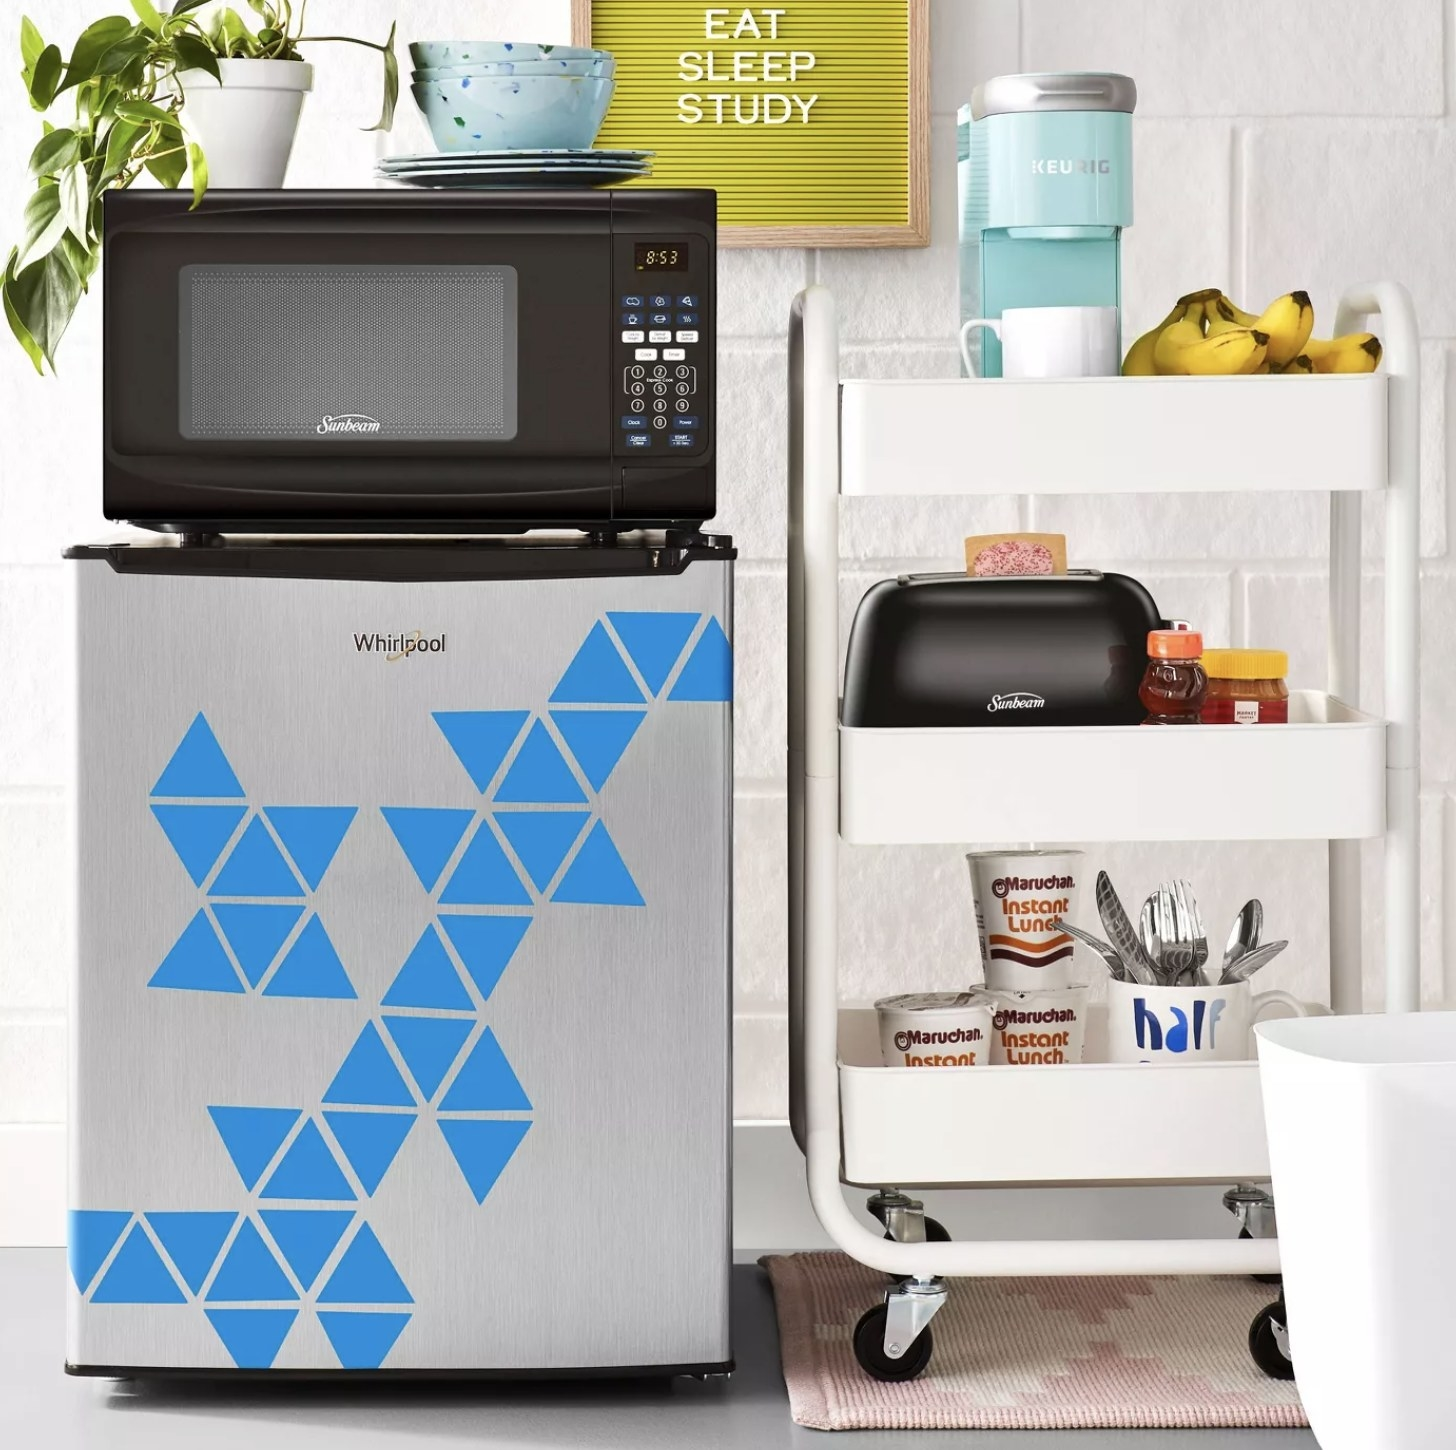 The mini refrigerator with decals on it